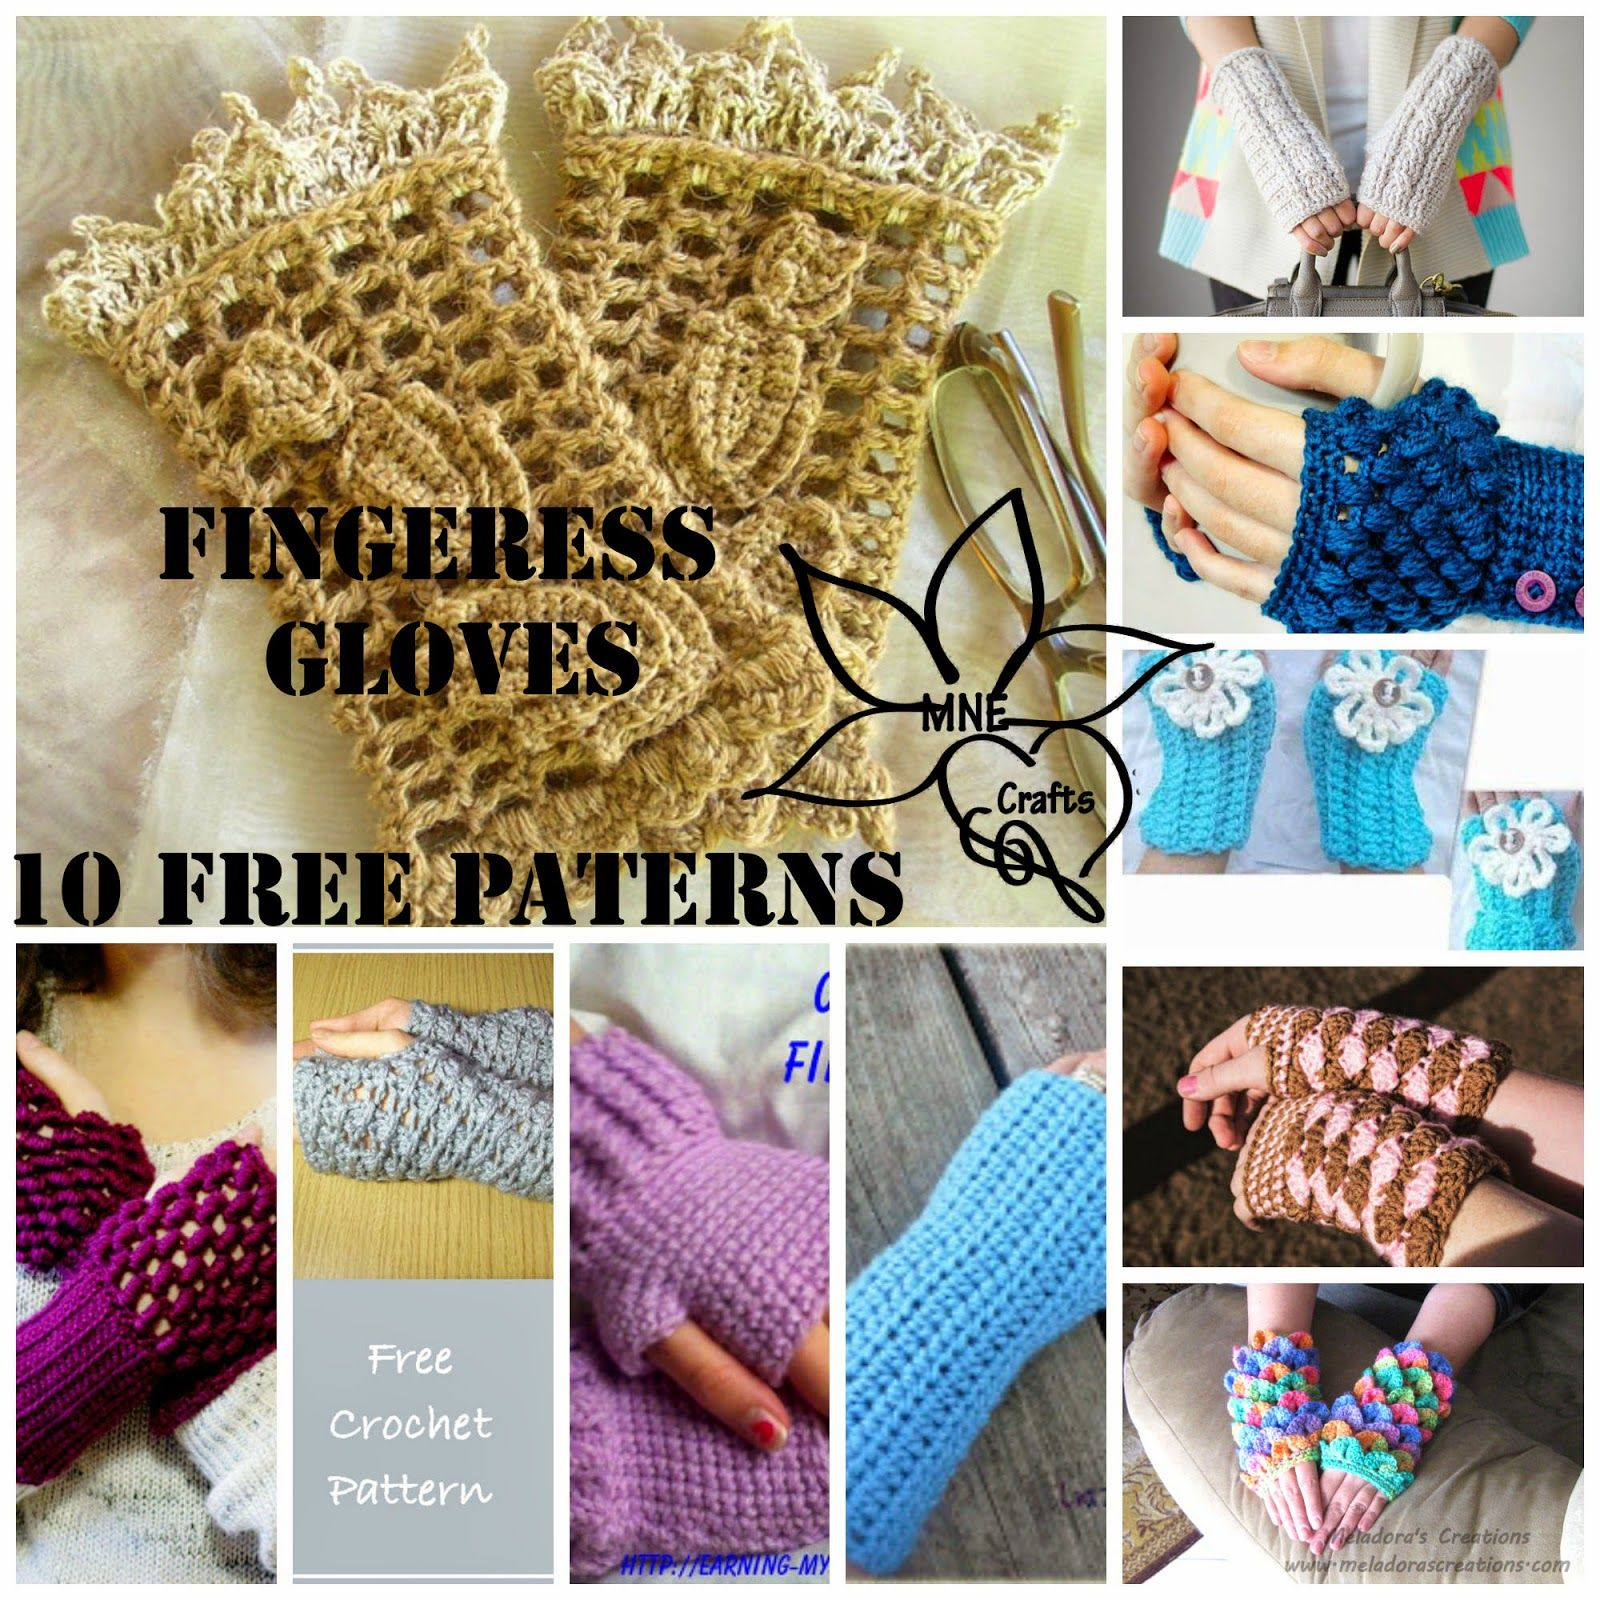 This weeks free pattern round up will follow a wintery lets get more beautiful fingerless gloves mne crafts fingerless gloves round up 10 free patterns bankloansurffo Image collections